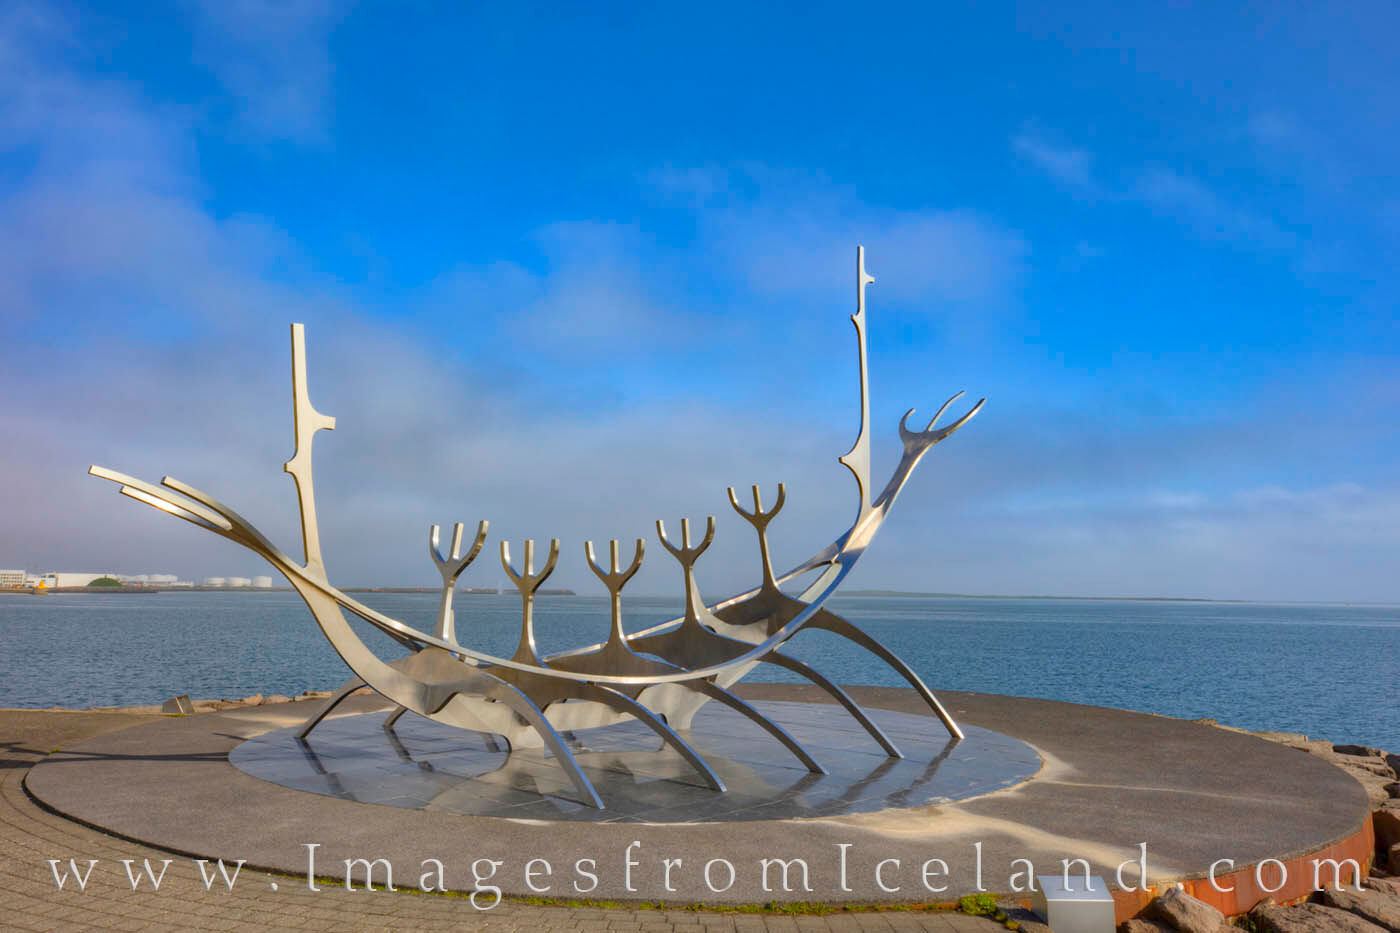 Sculpted by Jón Gunnar Árnason in 1990, the Sun Voyager was intended to convey hope for the future and appear as a dream vessel...